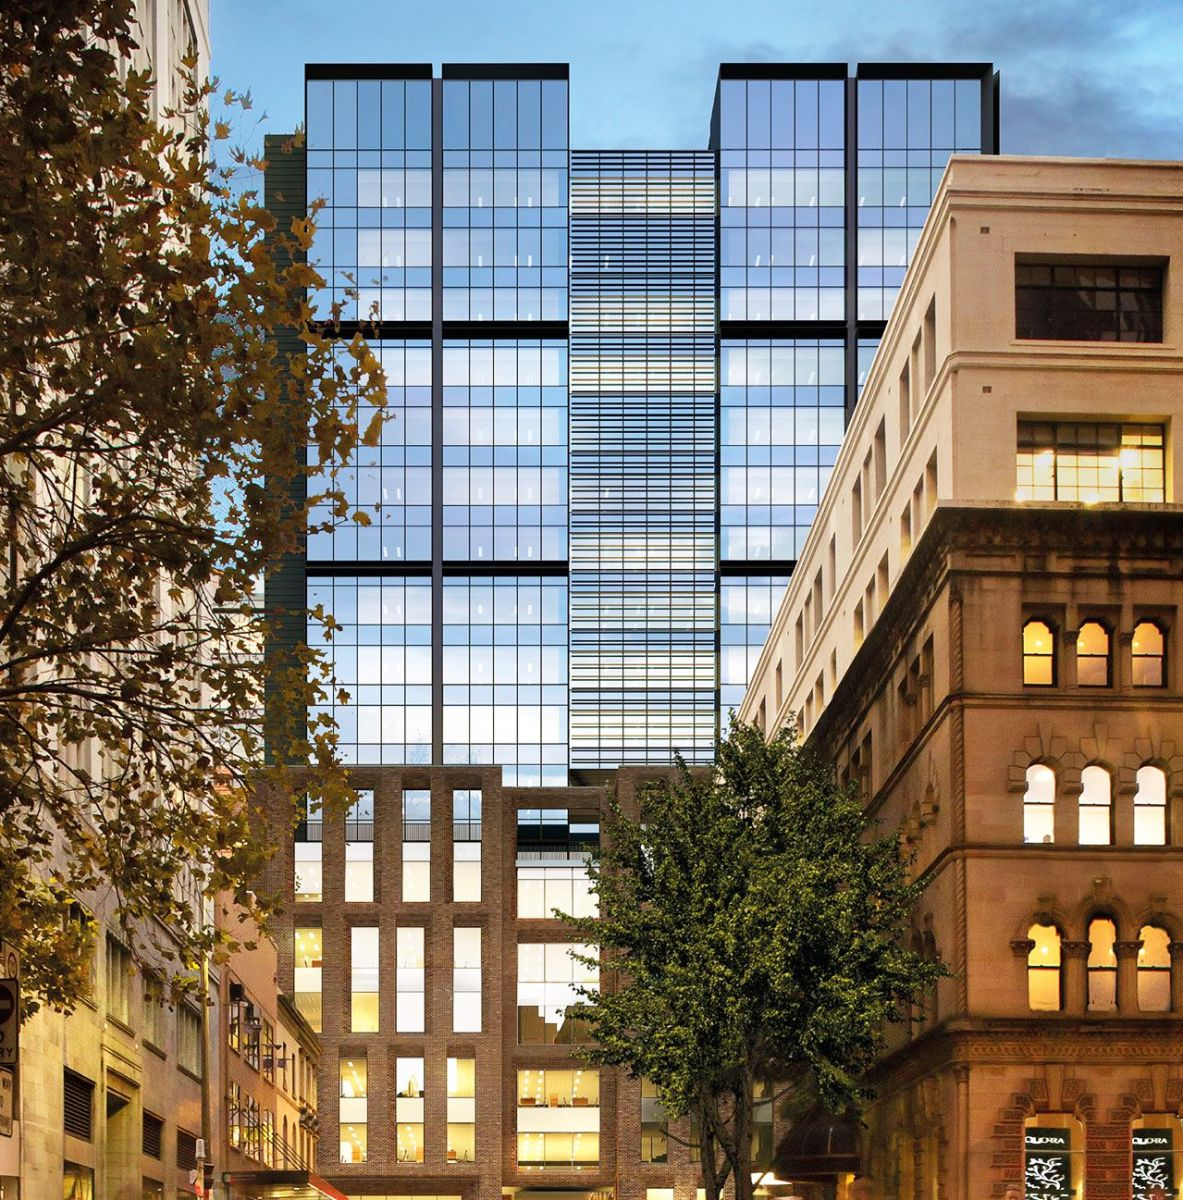 Investa Office Fund's Barrack Place, at 151 Clarence Street, was the only A-grade office project to be delivered to Sydney's CBD in 2018, bringing 20,400 sqm of stock to the market. Tenants occupied the building in October 2018.